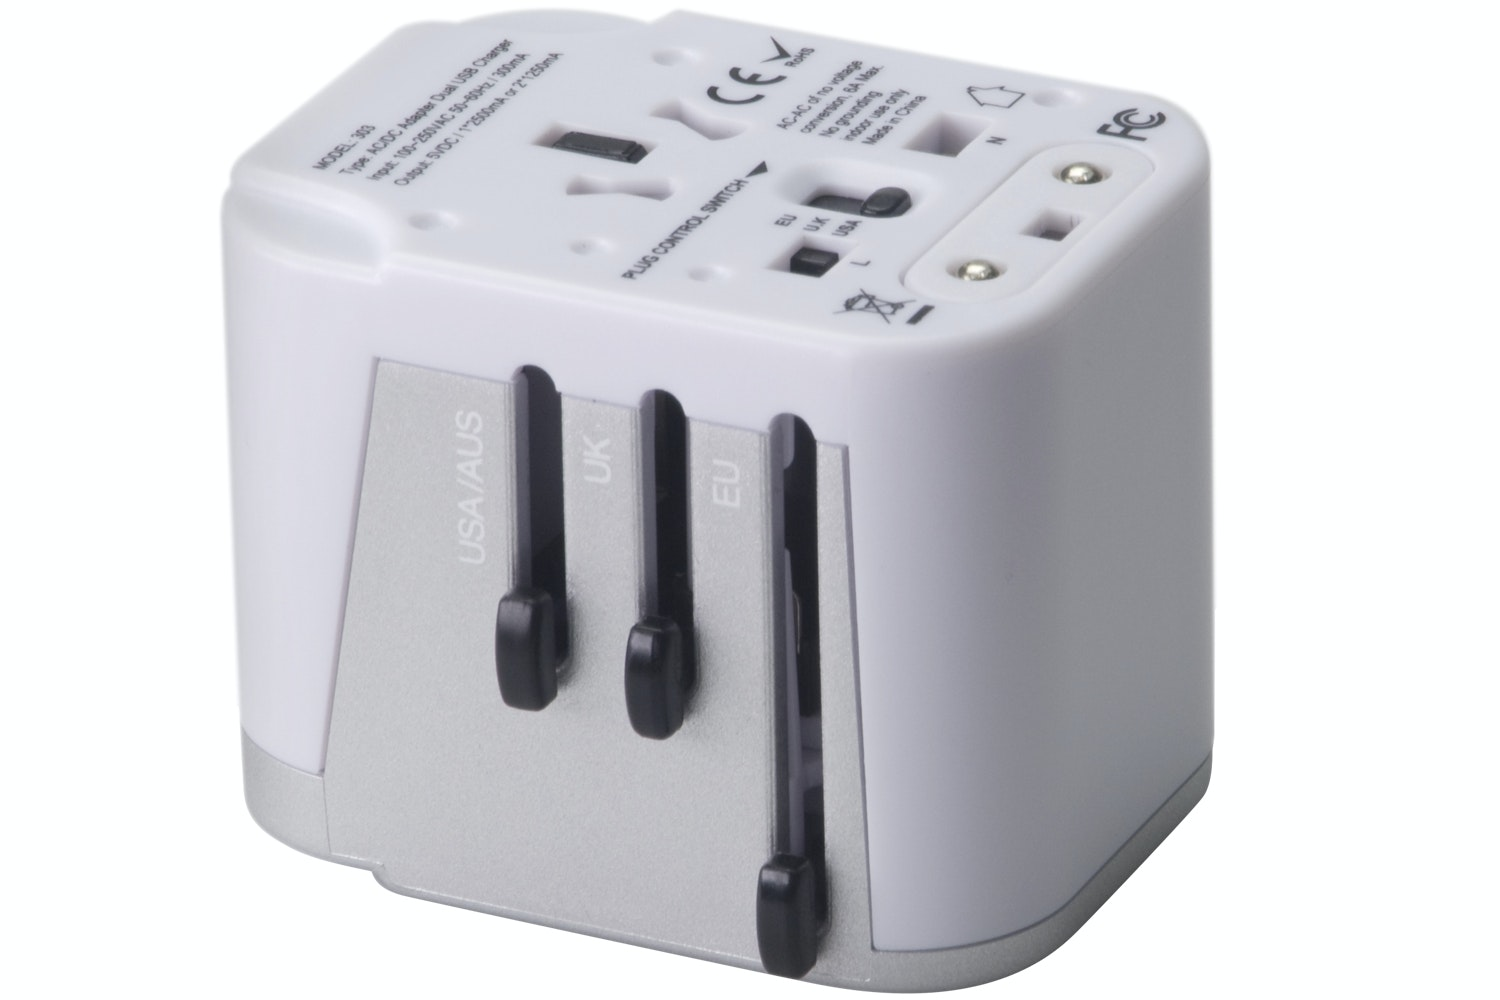 G&BL Universal Travel Adapter with 2 USB 2100mA Professional series